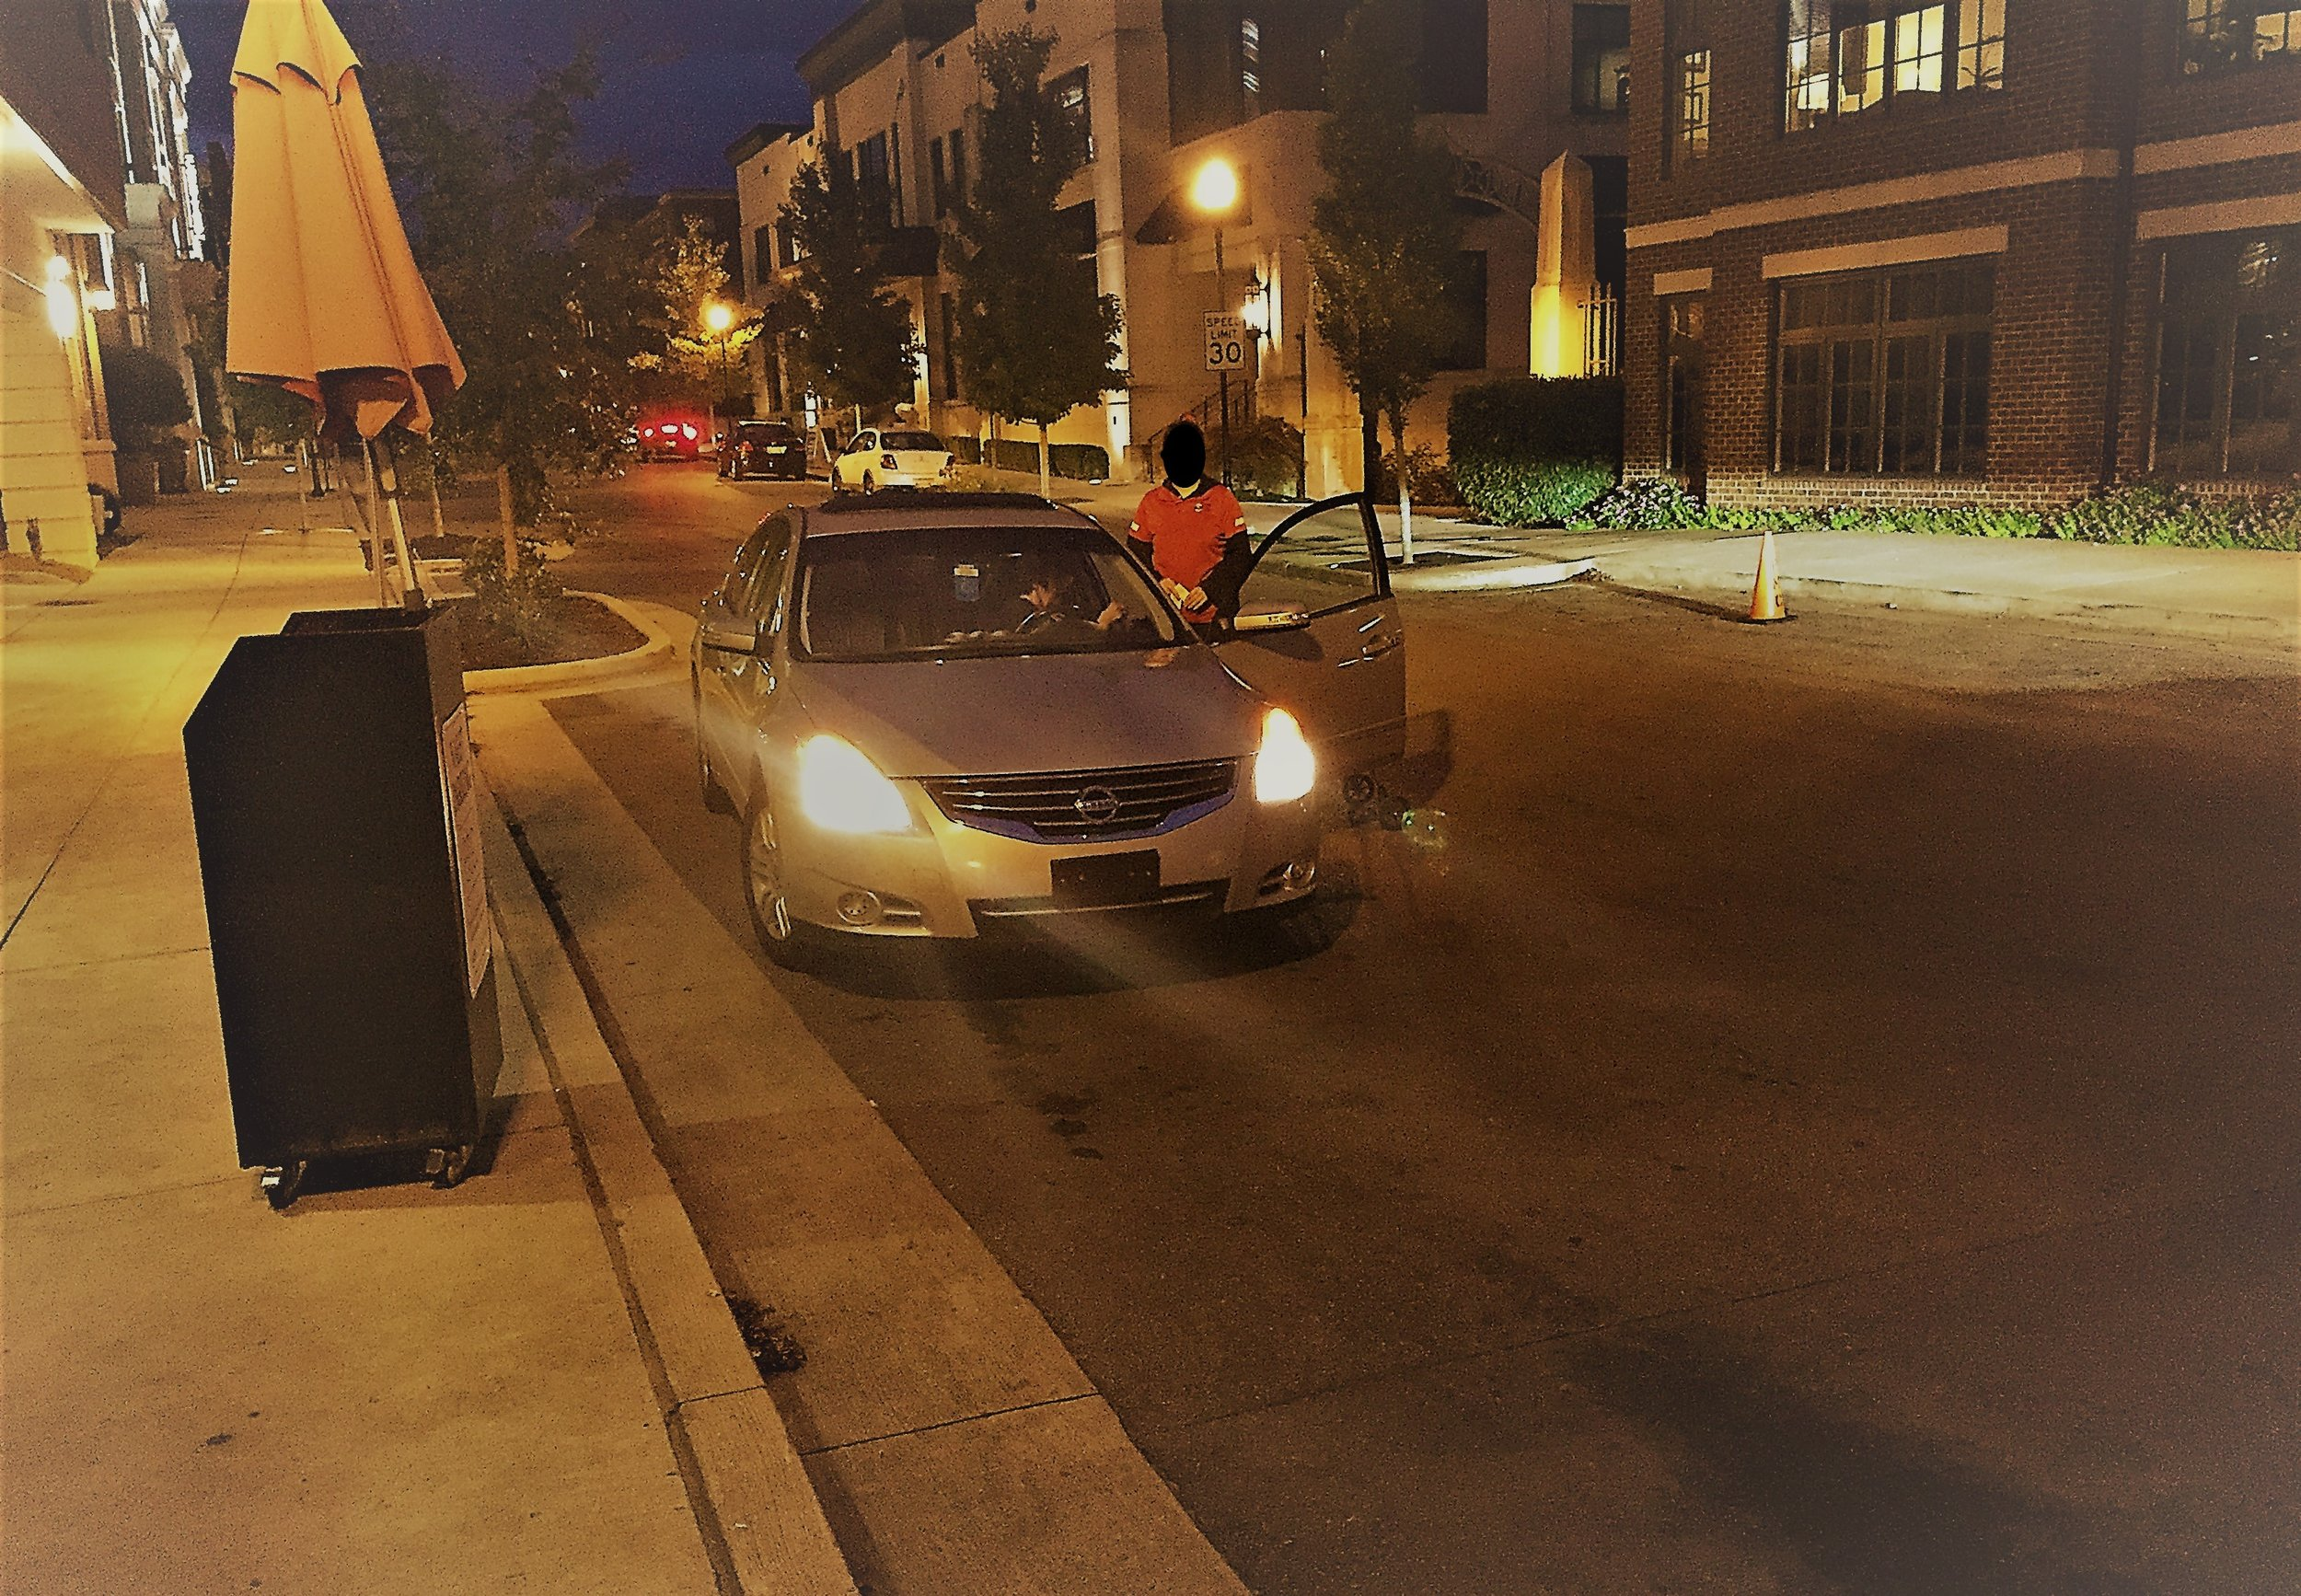 Valet Parking Missing Curb Cut.jpg